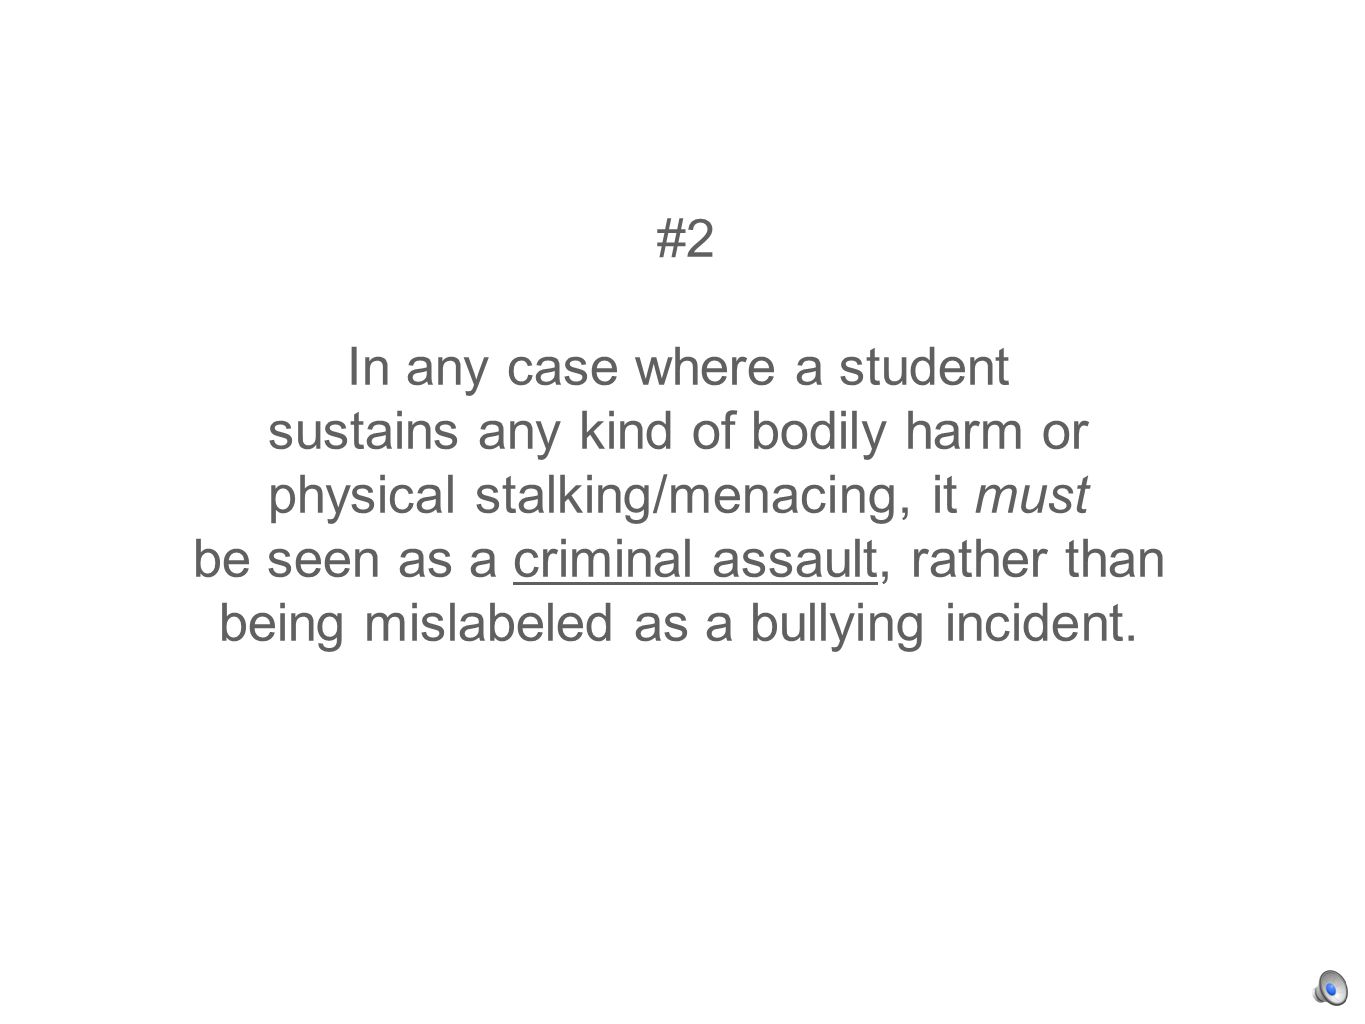 #2 In any case where a student sustains any kind of bodily harm or physical stalking/menacing, it must be seen as a criminal assault, rather than being mislabeled as a bullying incident.